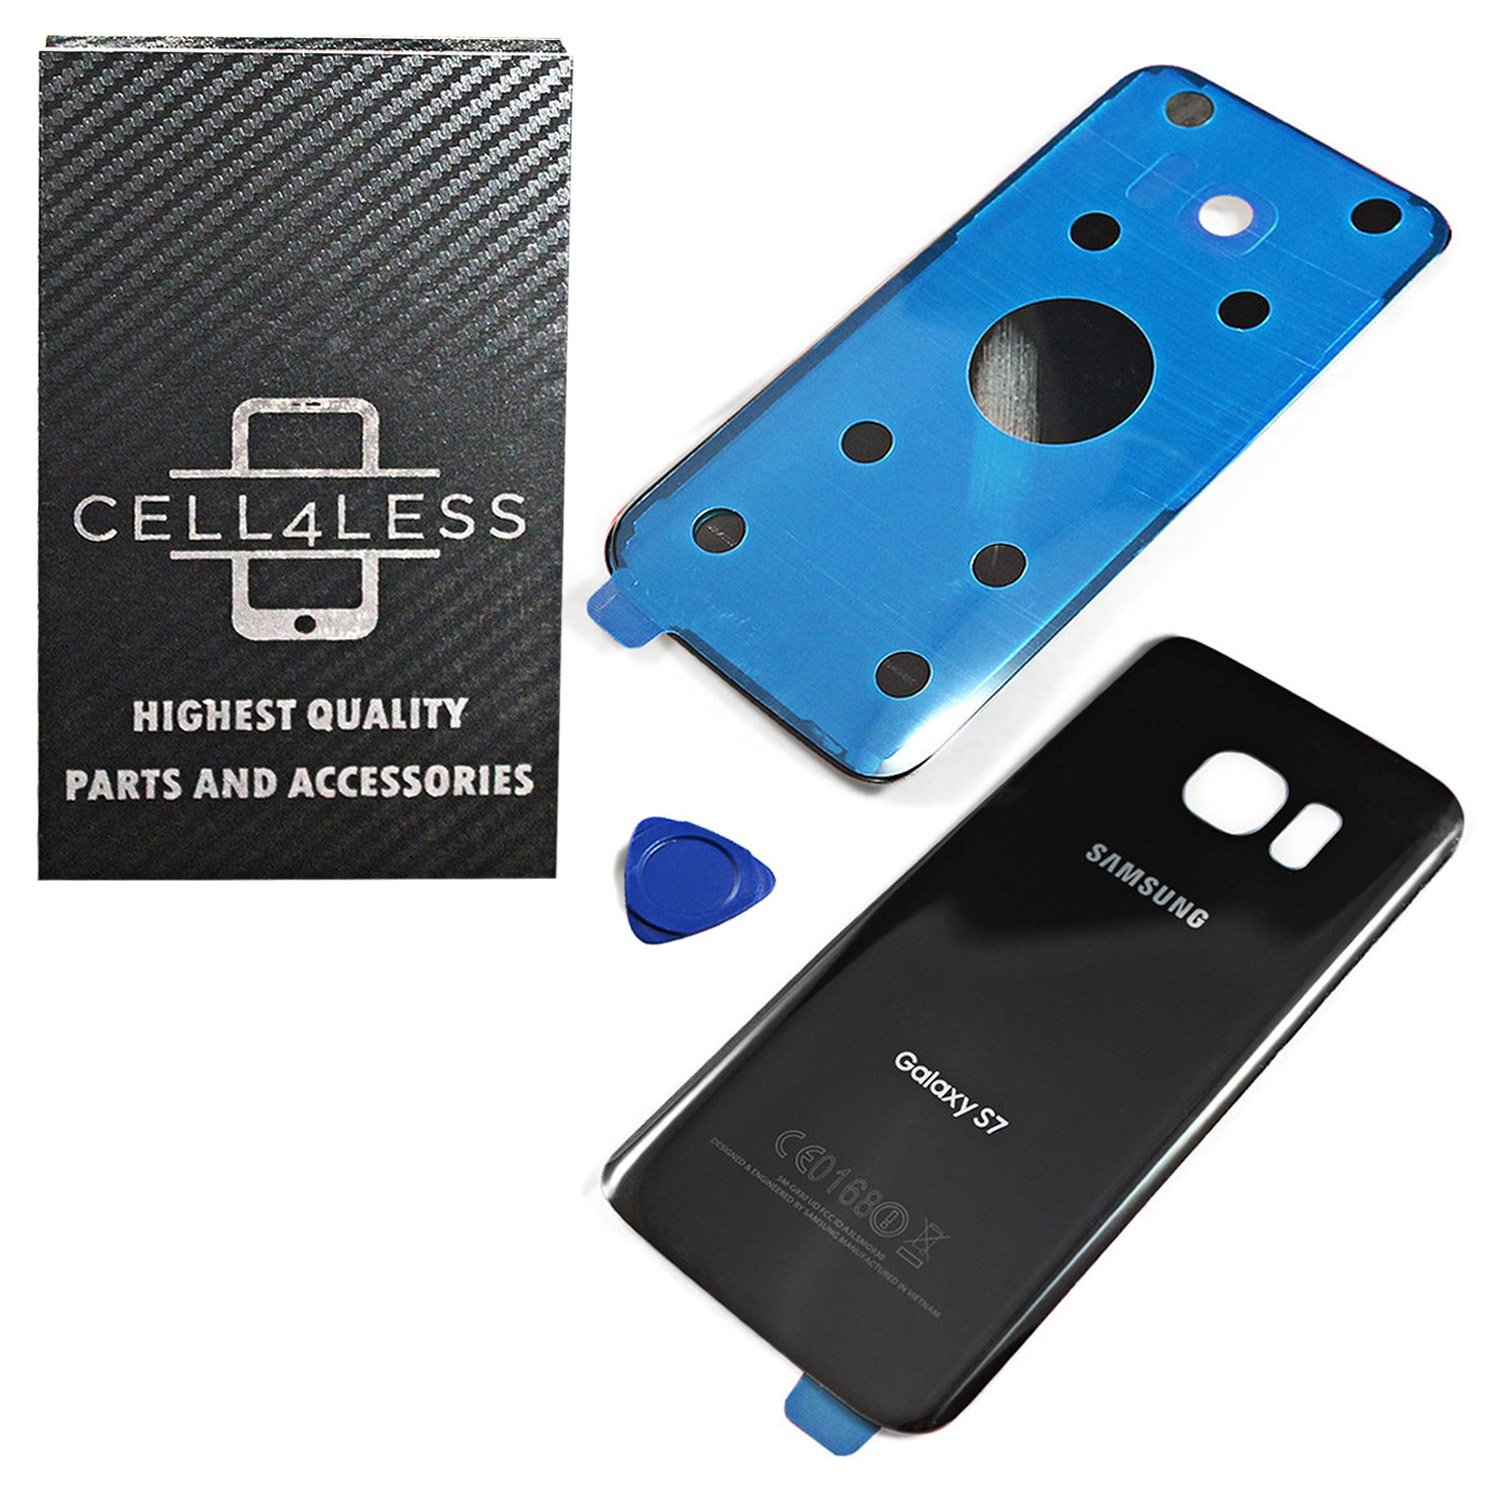 CELL4LESS Compatible Back Glass Cover Back Battery Door w/ Pre-Installed Adhesive Replacement for Samsung Galaxy S7 - All Models G930 All Carriers- 2 Logo - OEM Replacement (Black Onyx)